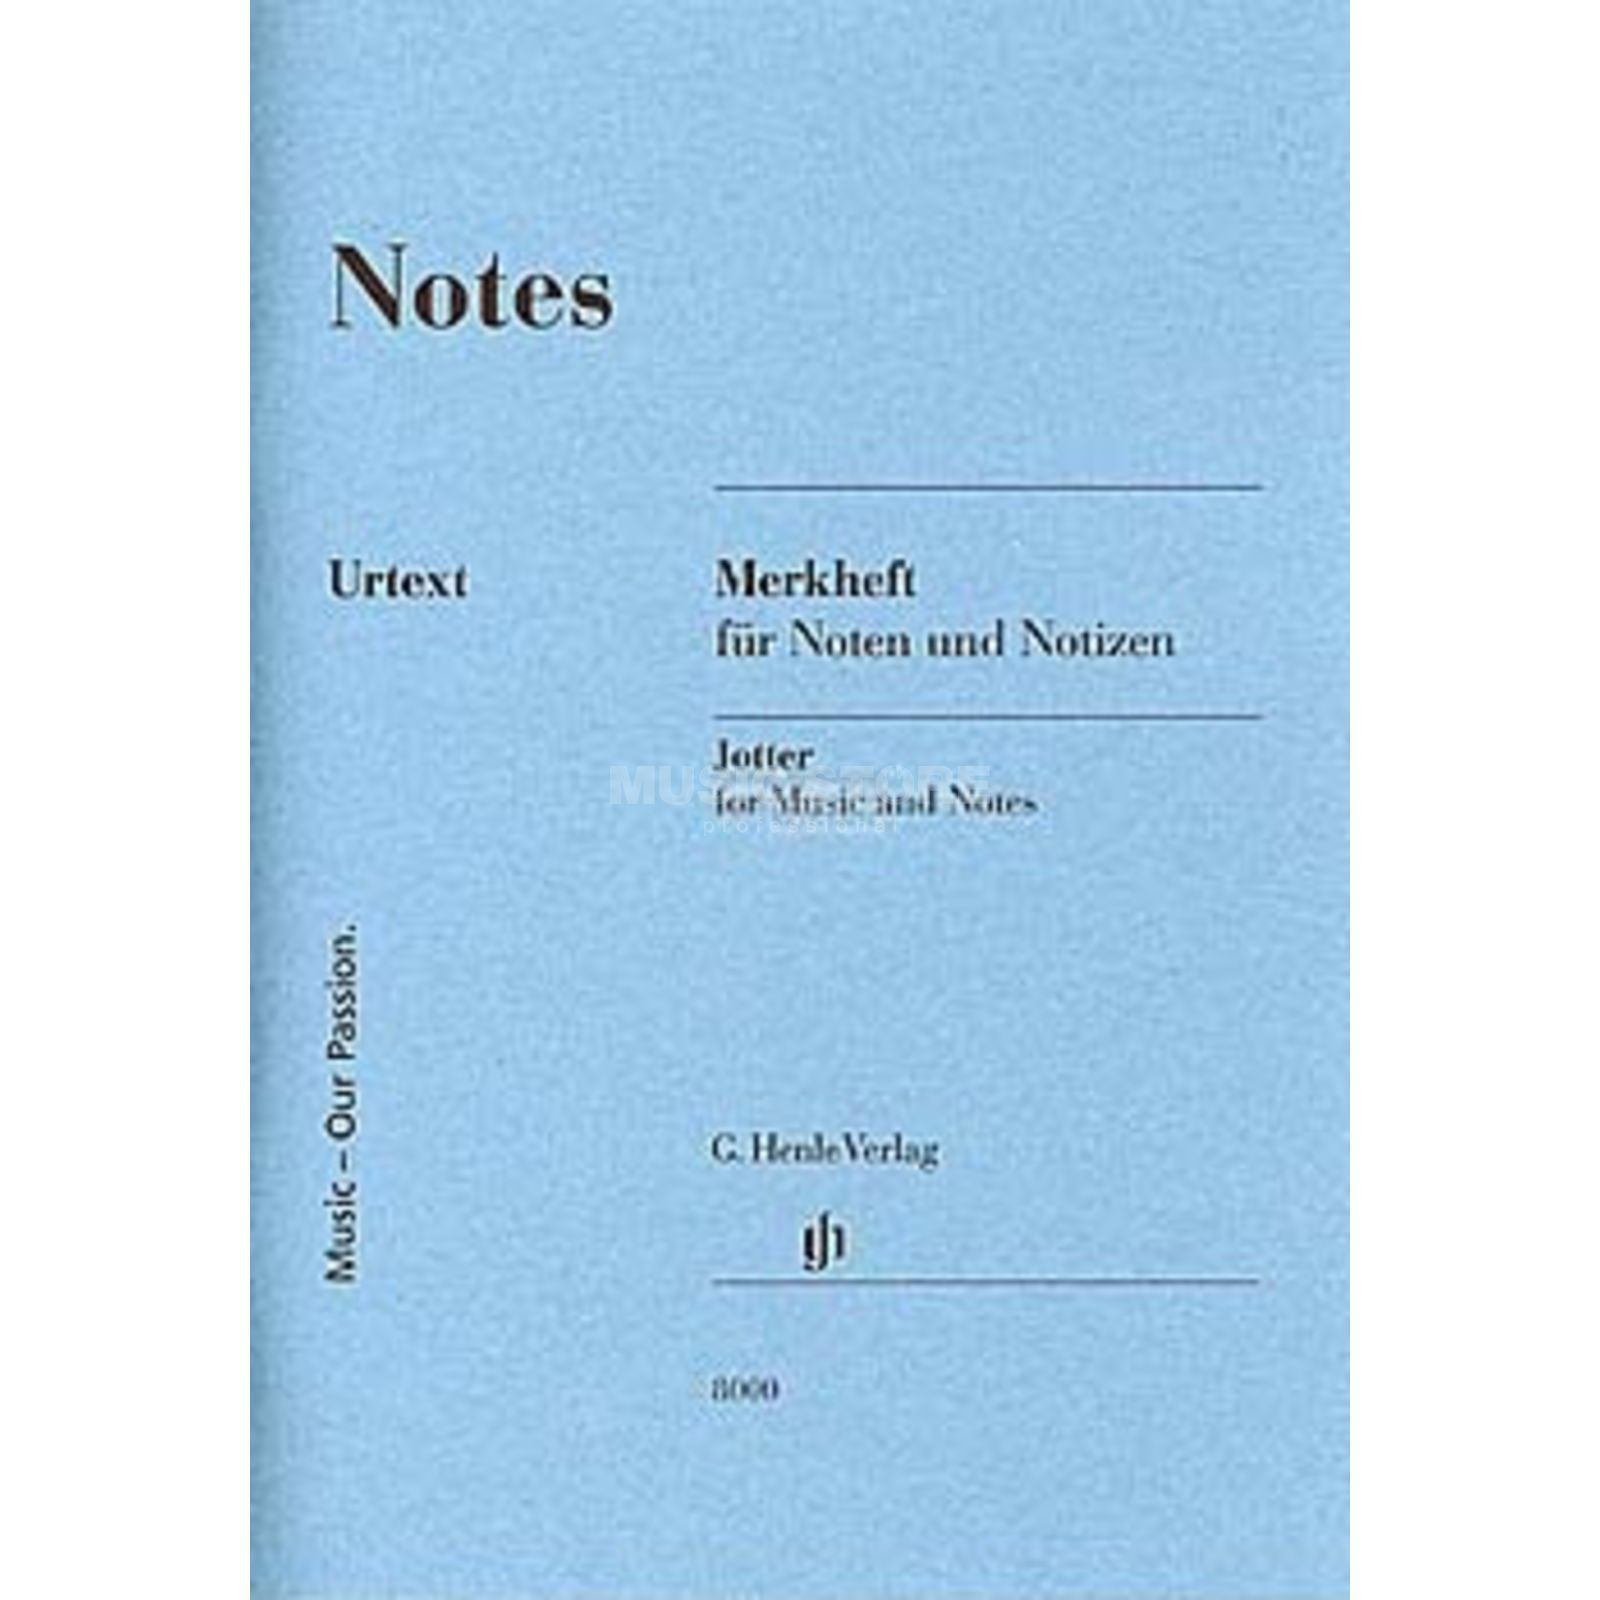 Henle Verlag Notenheft DIN A6 Notes Produktbillede